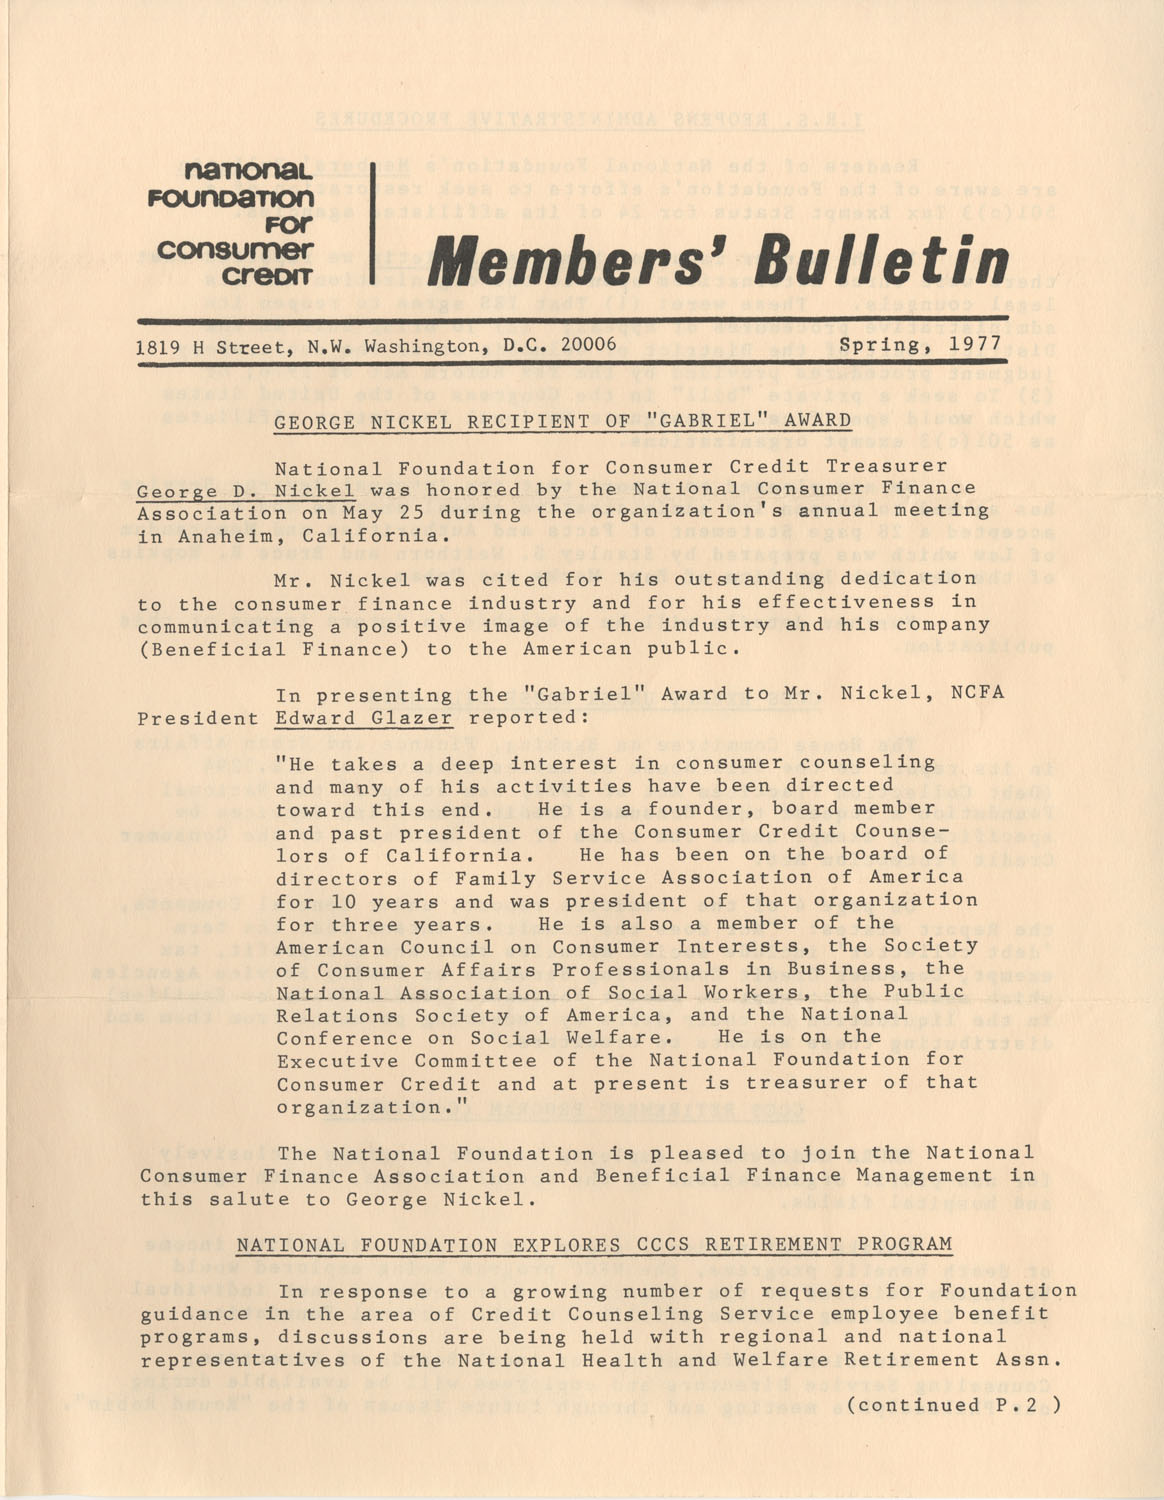 Members' Bulletin, National Foundation for Consumer Credit, Spring 1977